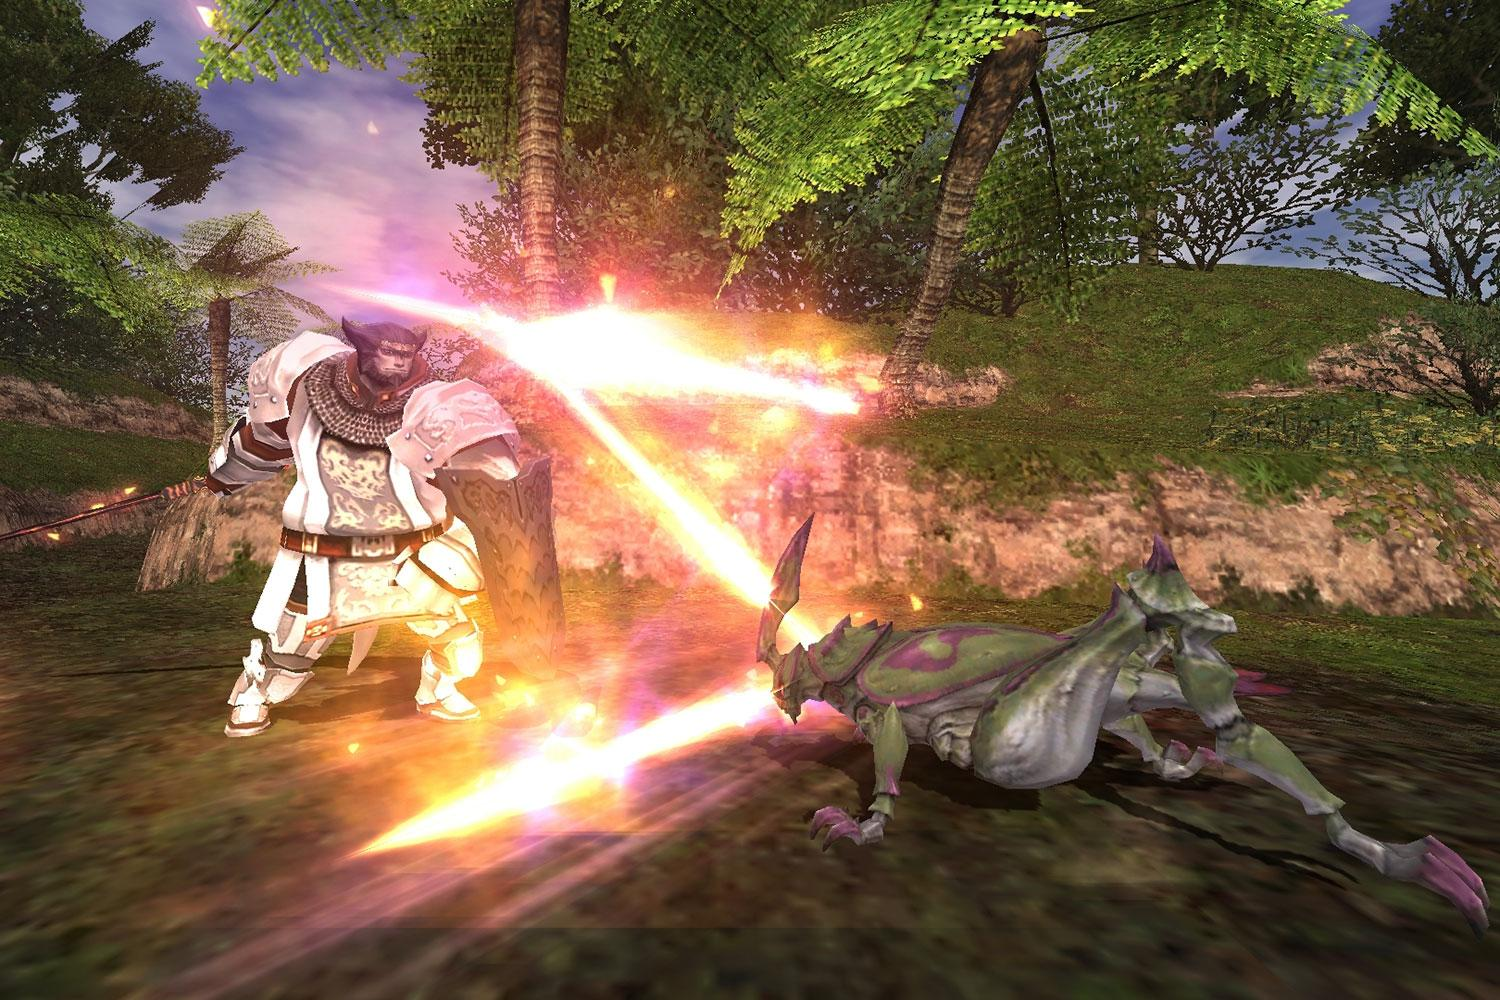 final fantasy xi coming to smartphones ending ps2 and